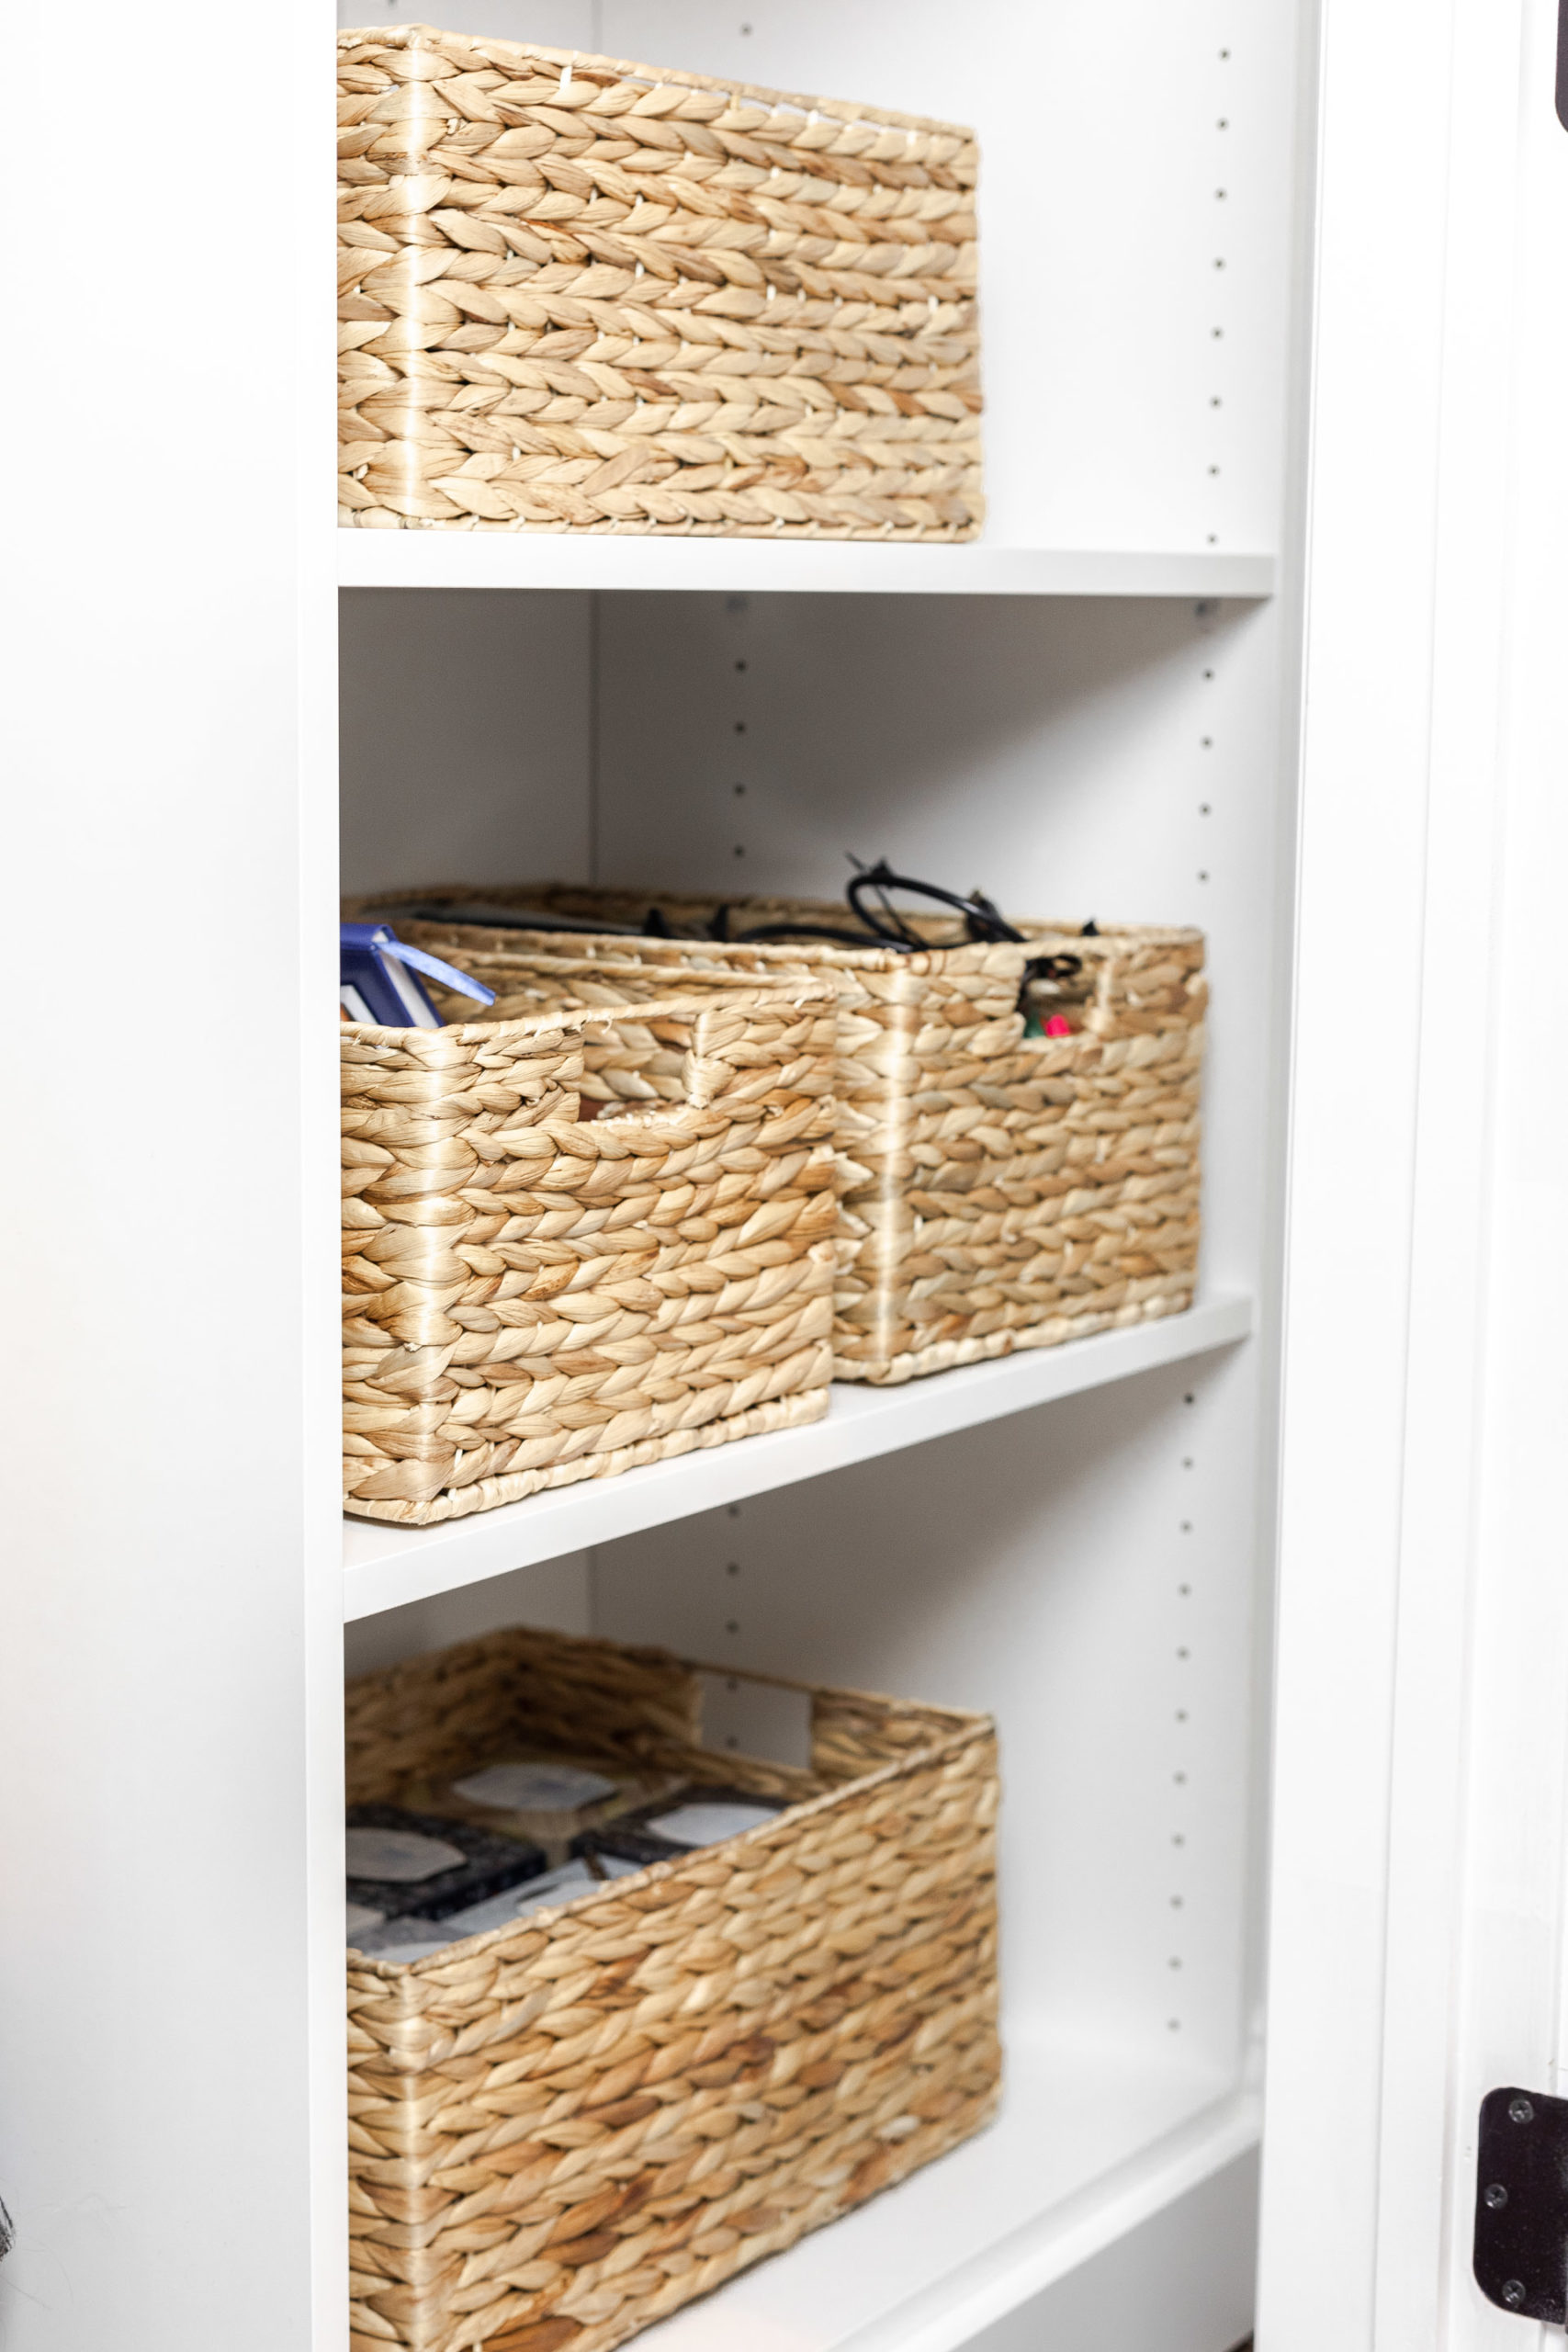 pantry-closet-container-store-basket-organization-the-glamorous-gal